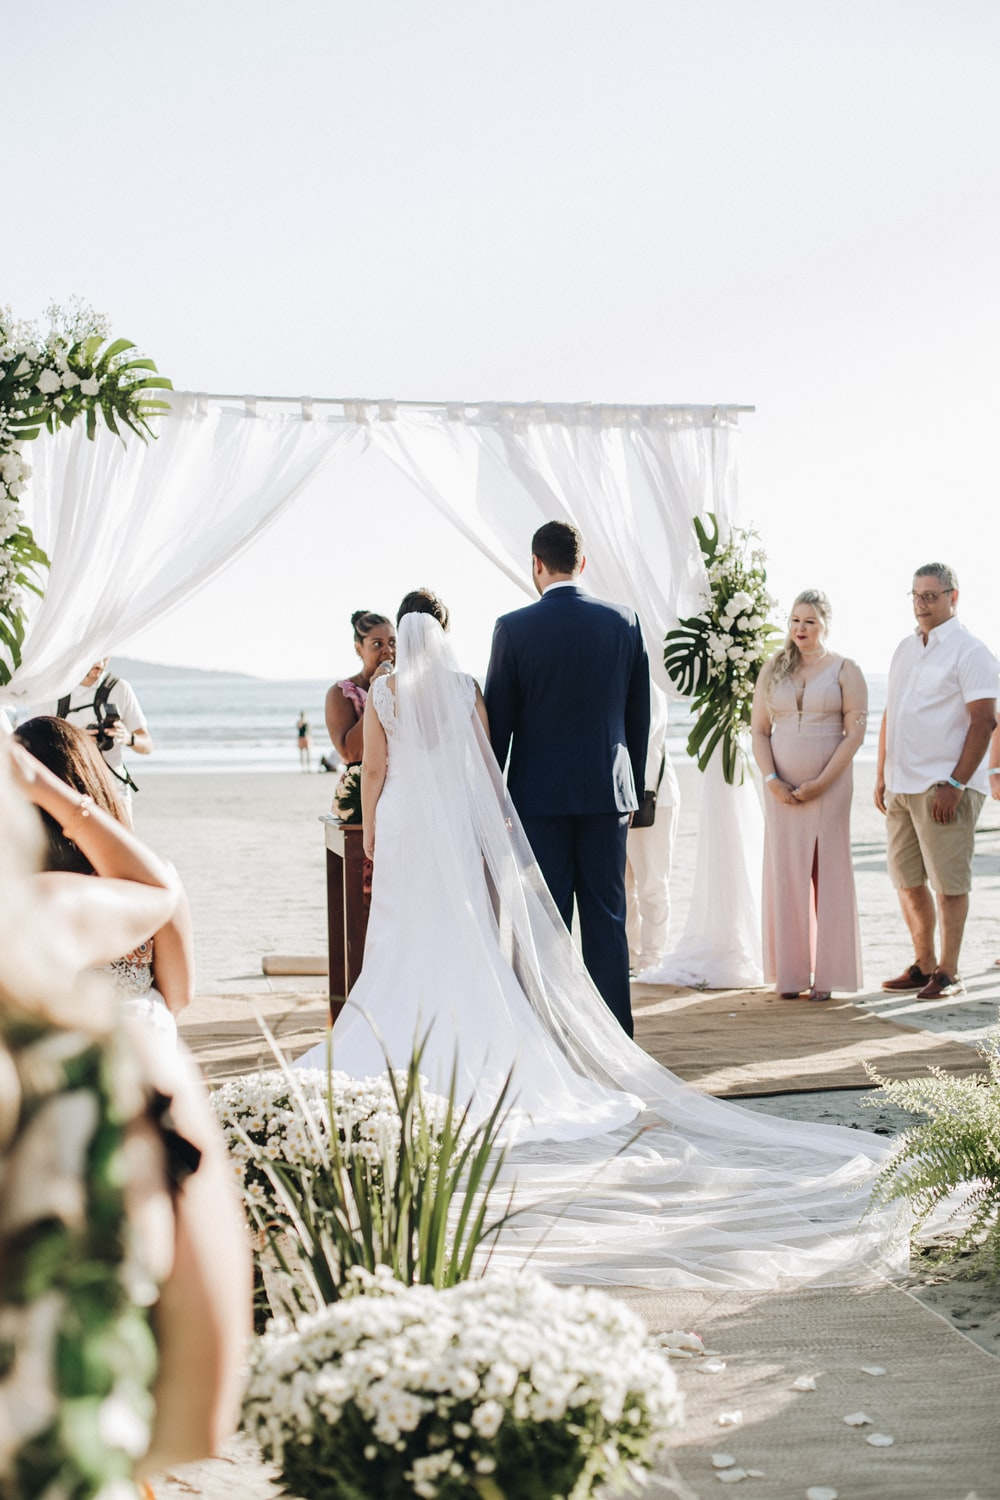 newly wed couple on isle getting married at shore